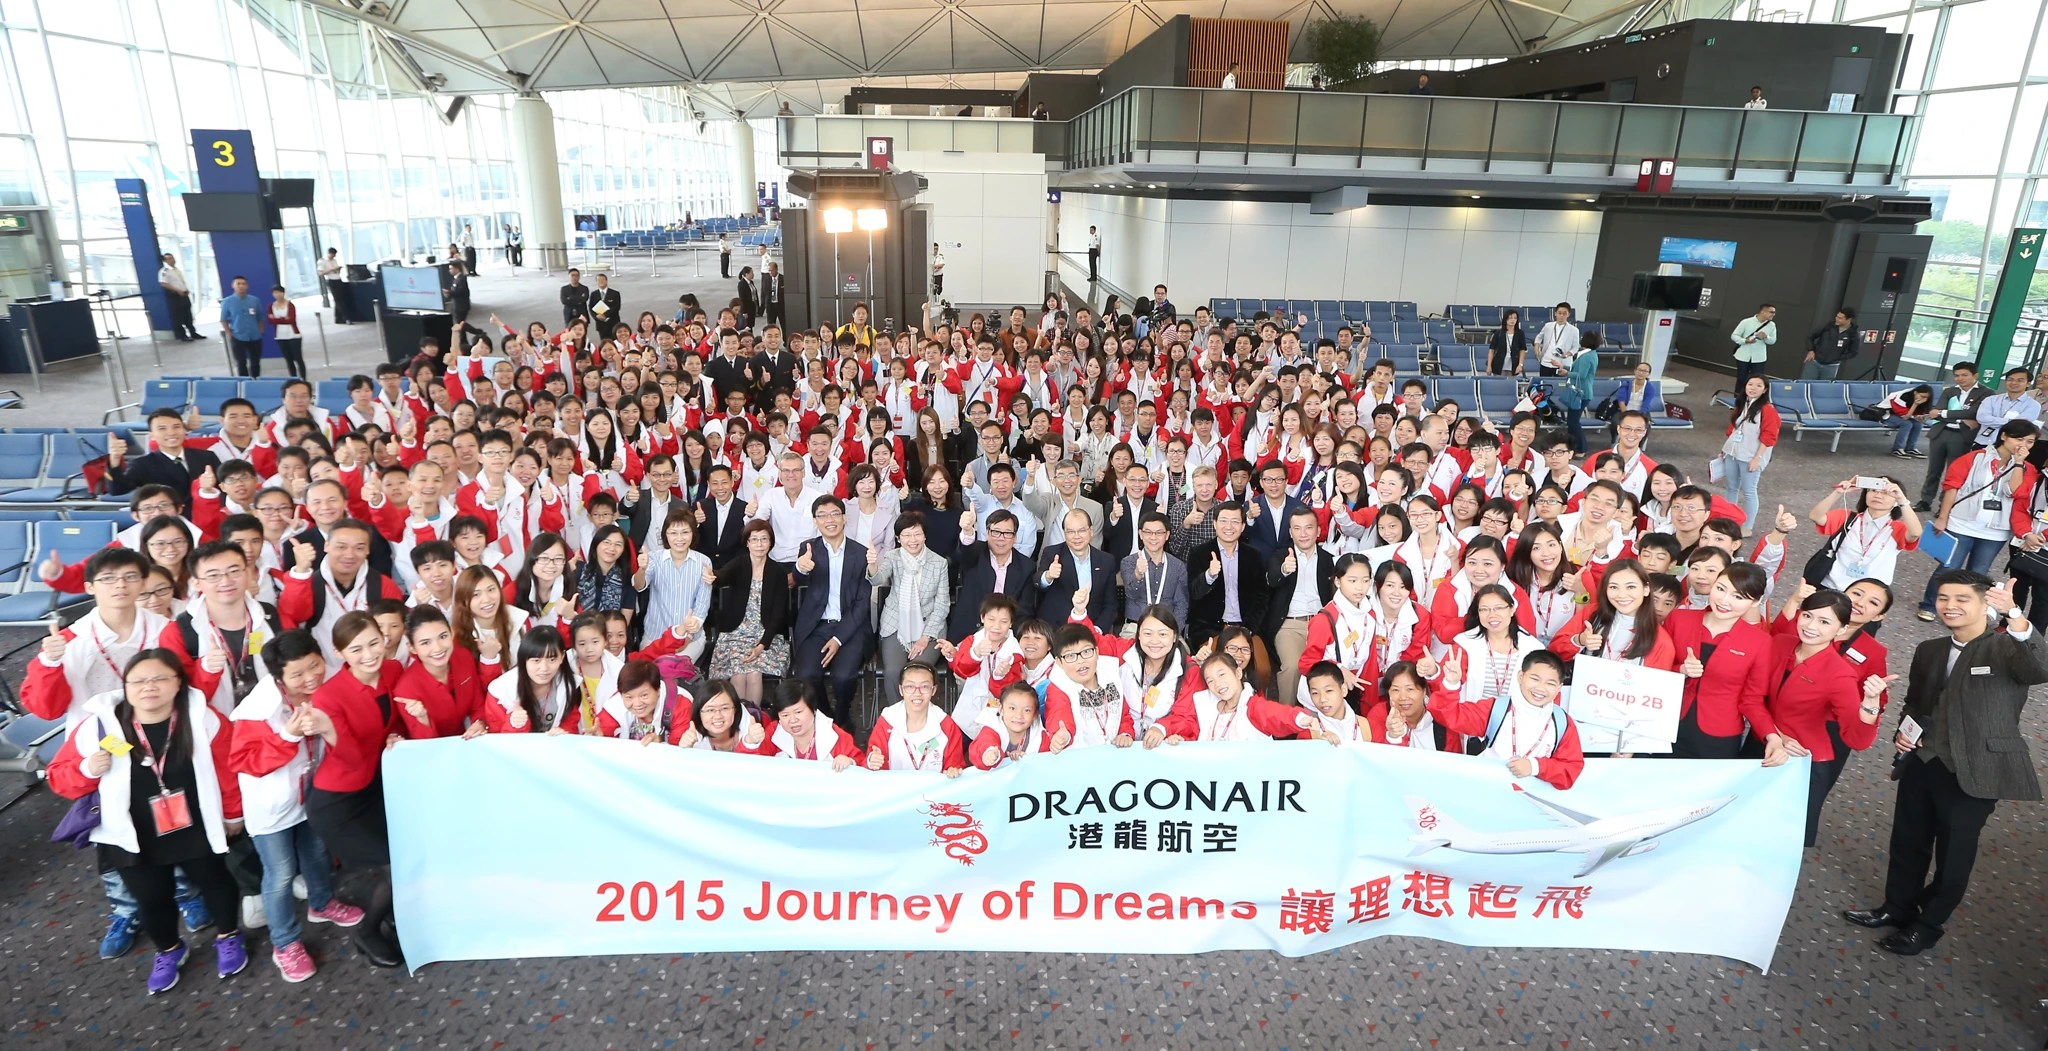 Dragonair's Journey of Dreams expands horizons of local youth. the thrill of flying for the first time - Cathay Pacific